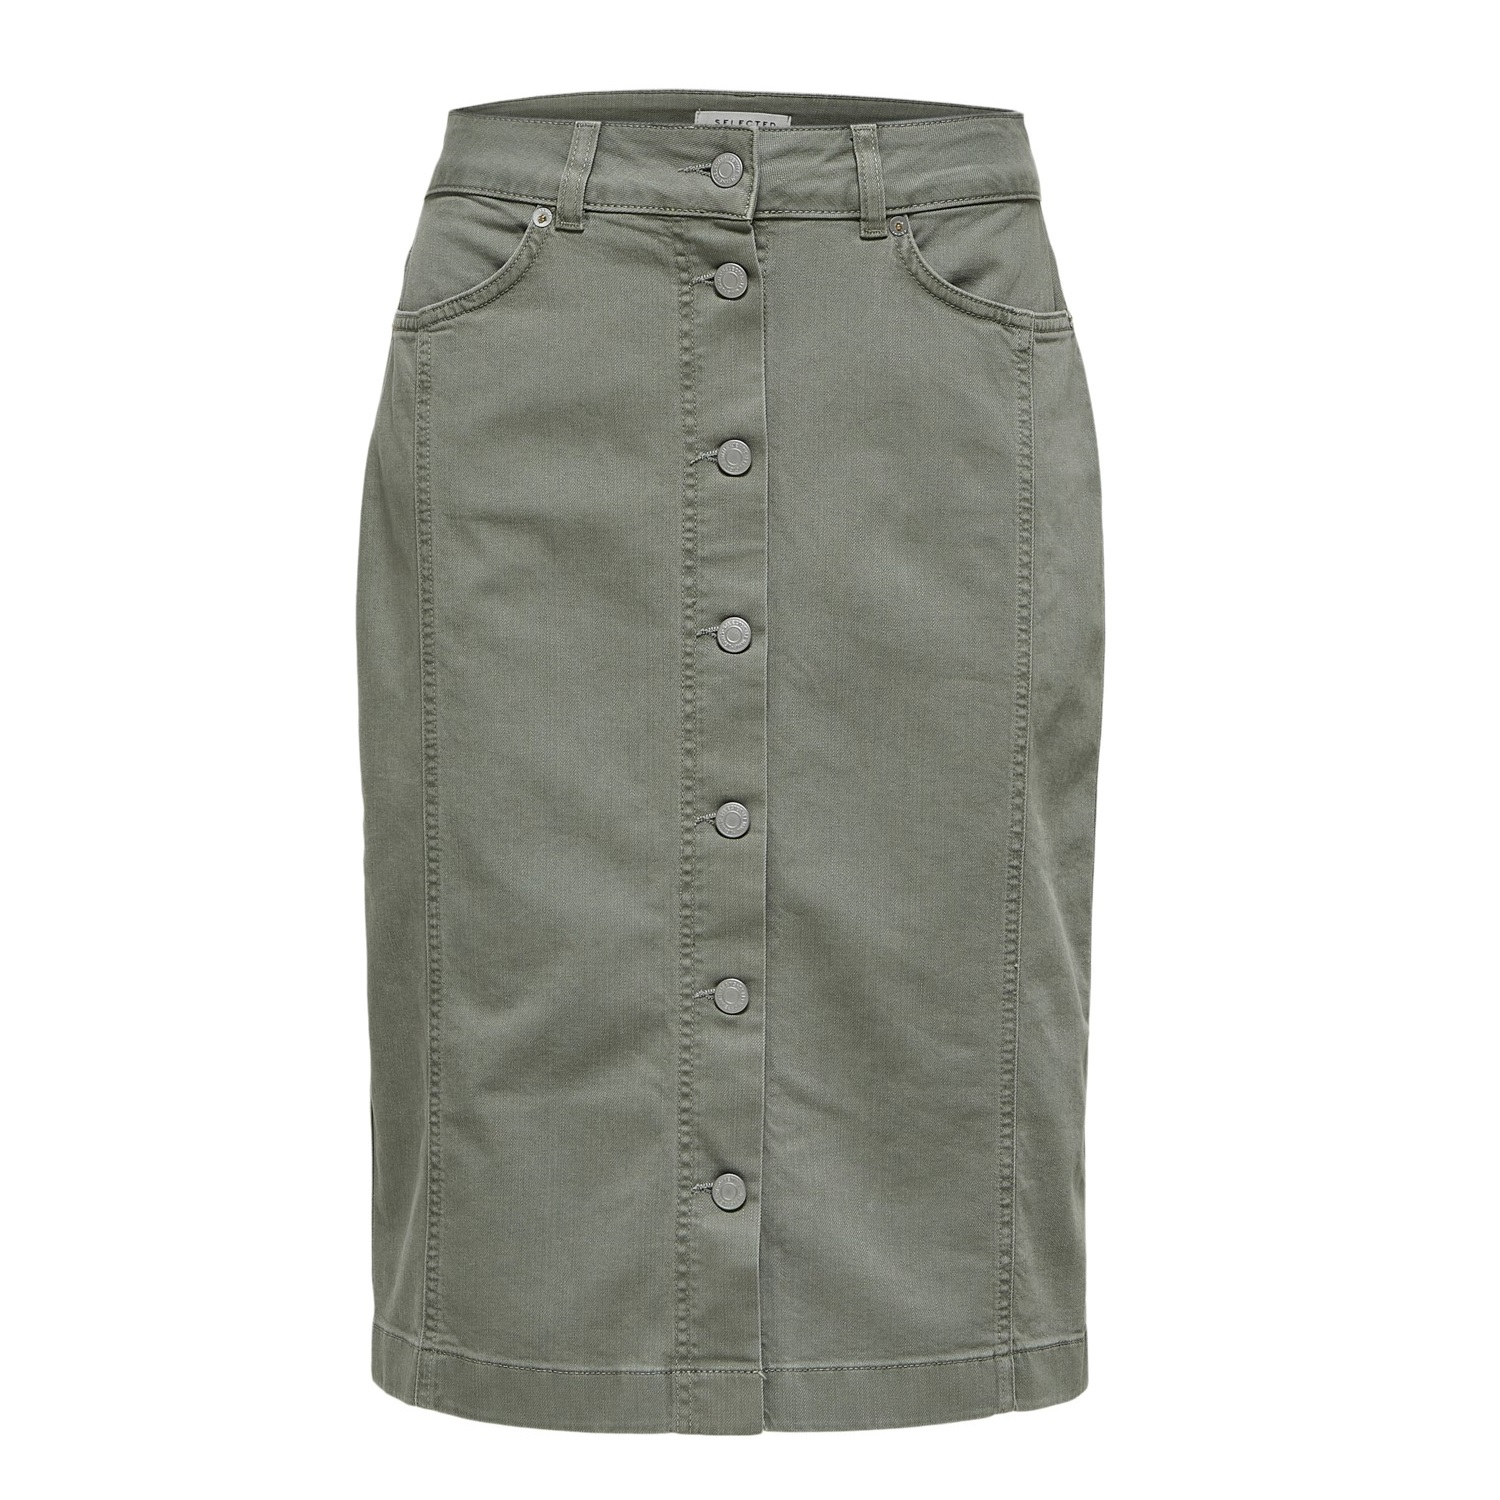 SALE Lise High Waisted Green Denim Skirt